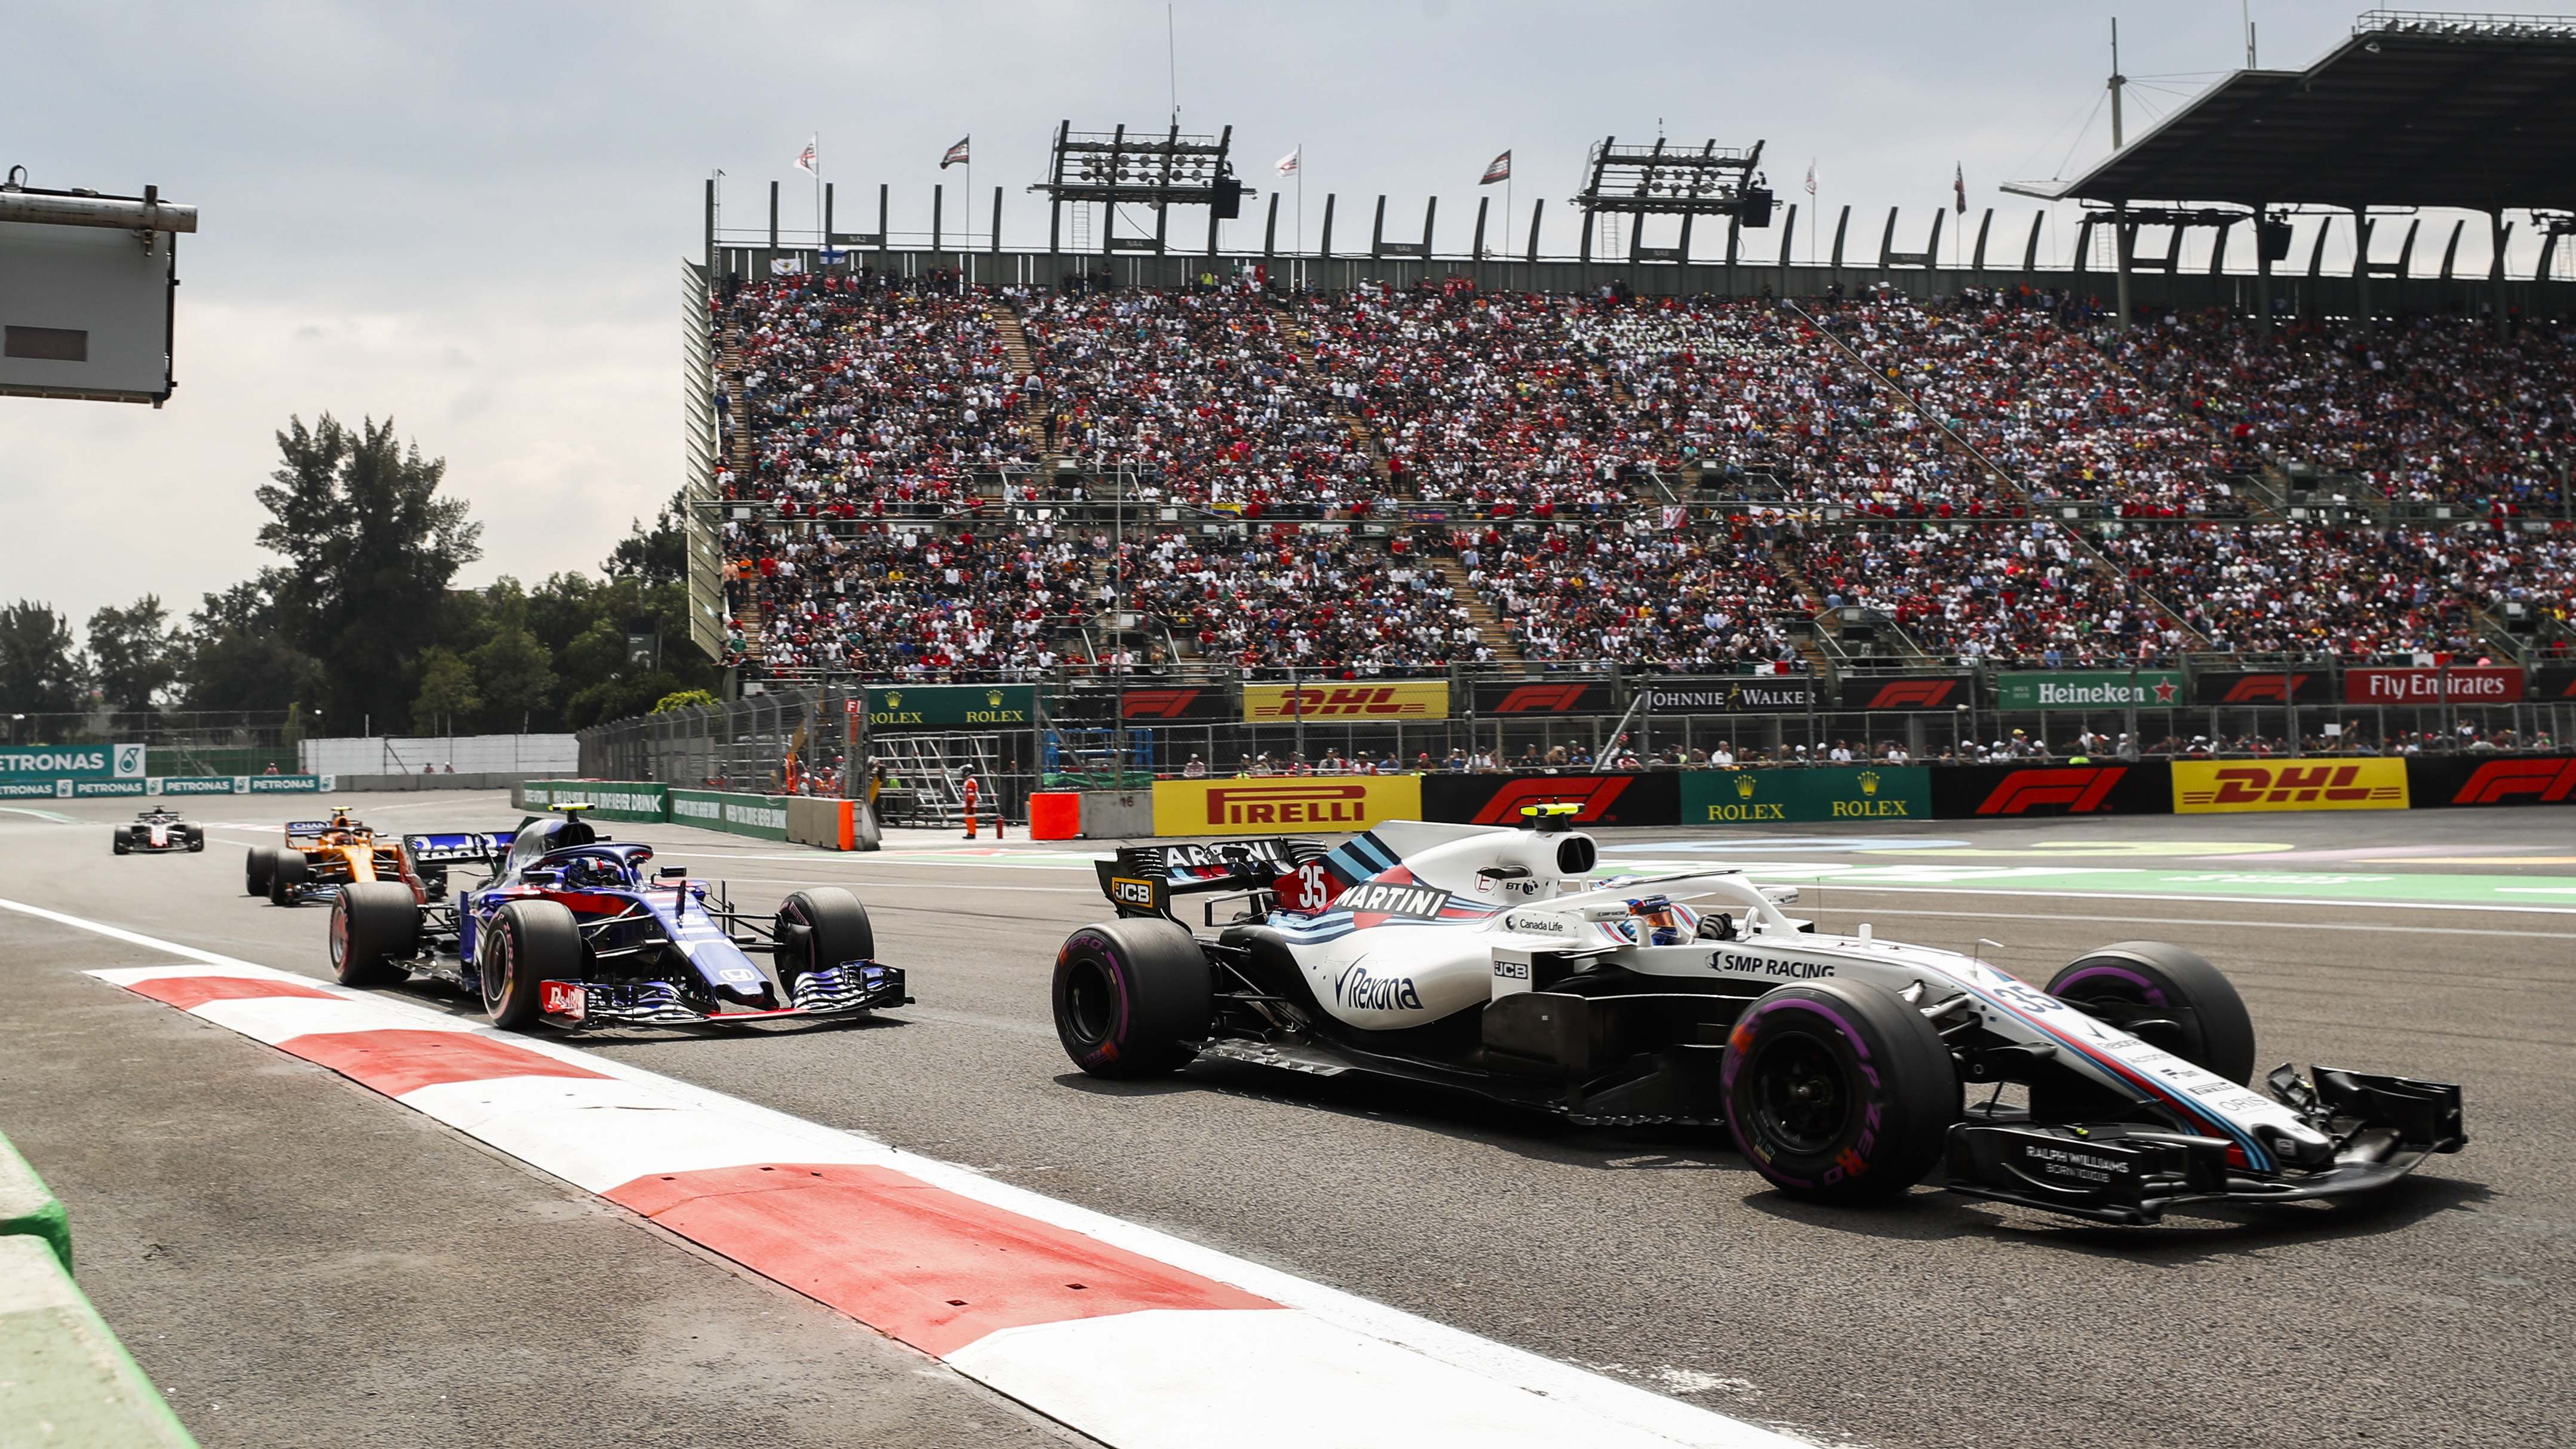 f1 race attendance figures for 2018 over four million fans visit grand prix weekends formula 1. Black Bedroom Furniture Sets. Home Design Ideas